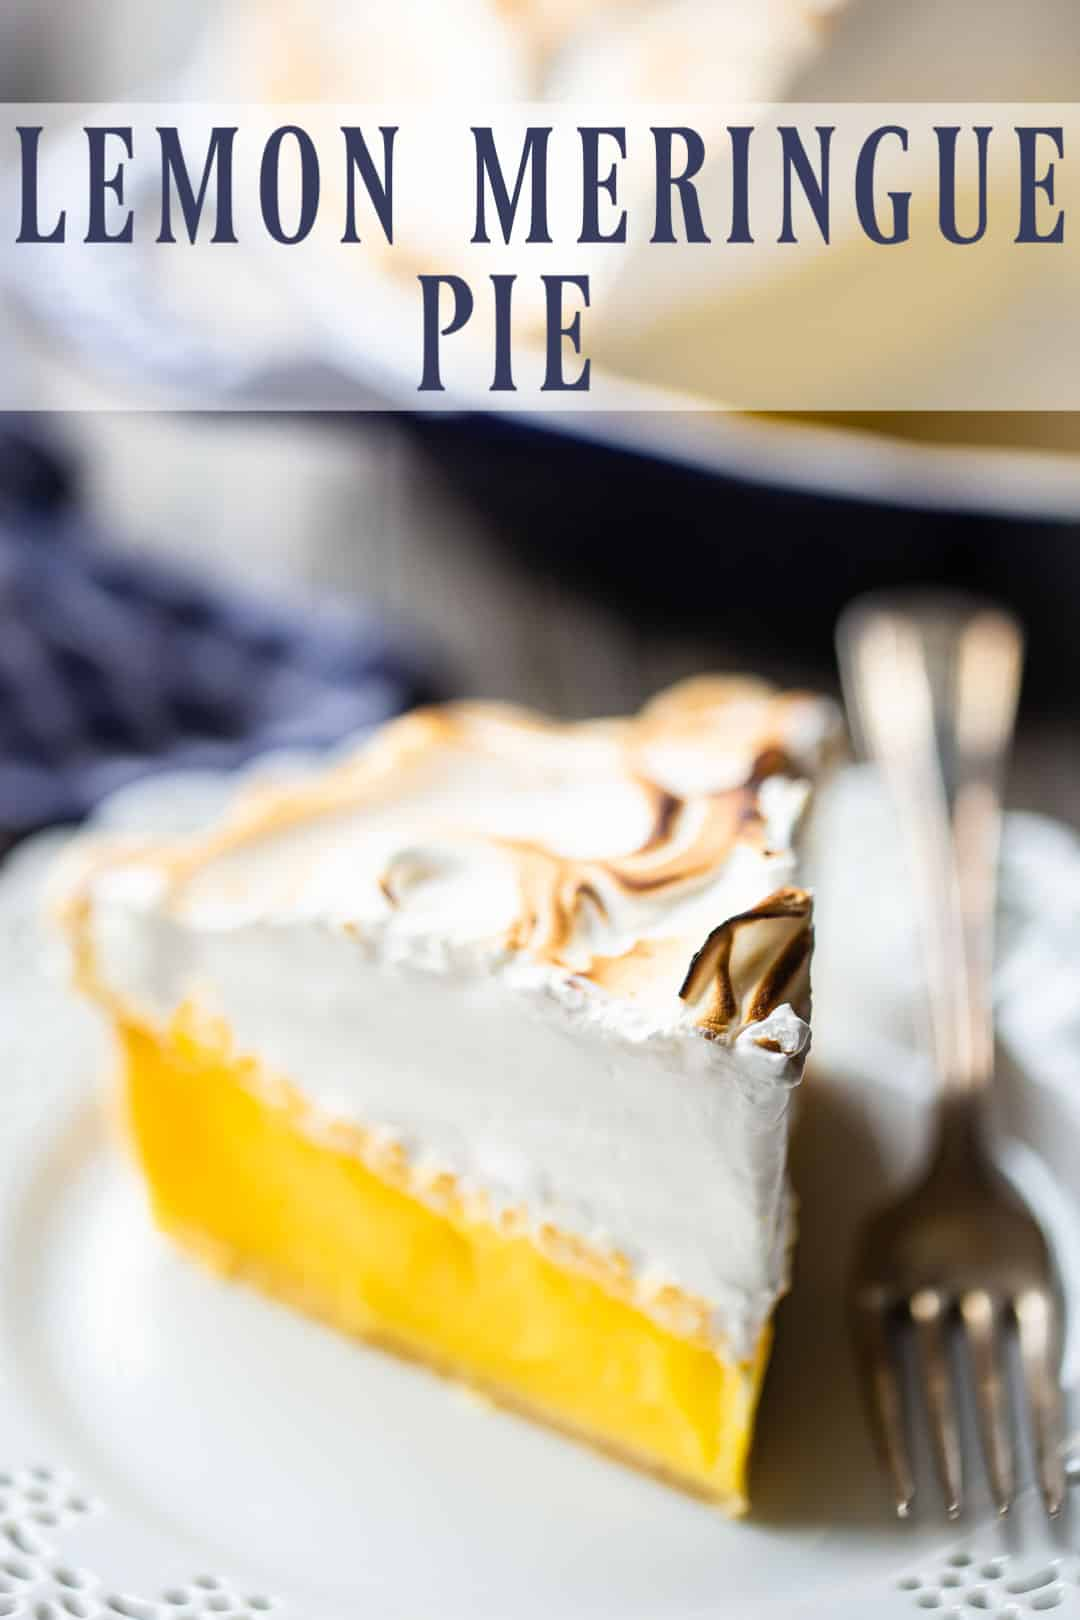 "Lemon meringue pie recipe, prepared, sliced, and served on a plate with a text overlay above that reads ""Lemon Meringue Pie."""